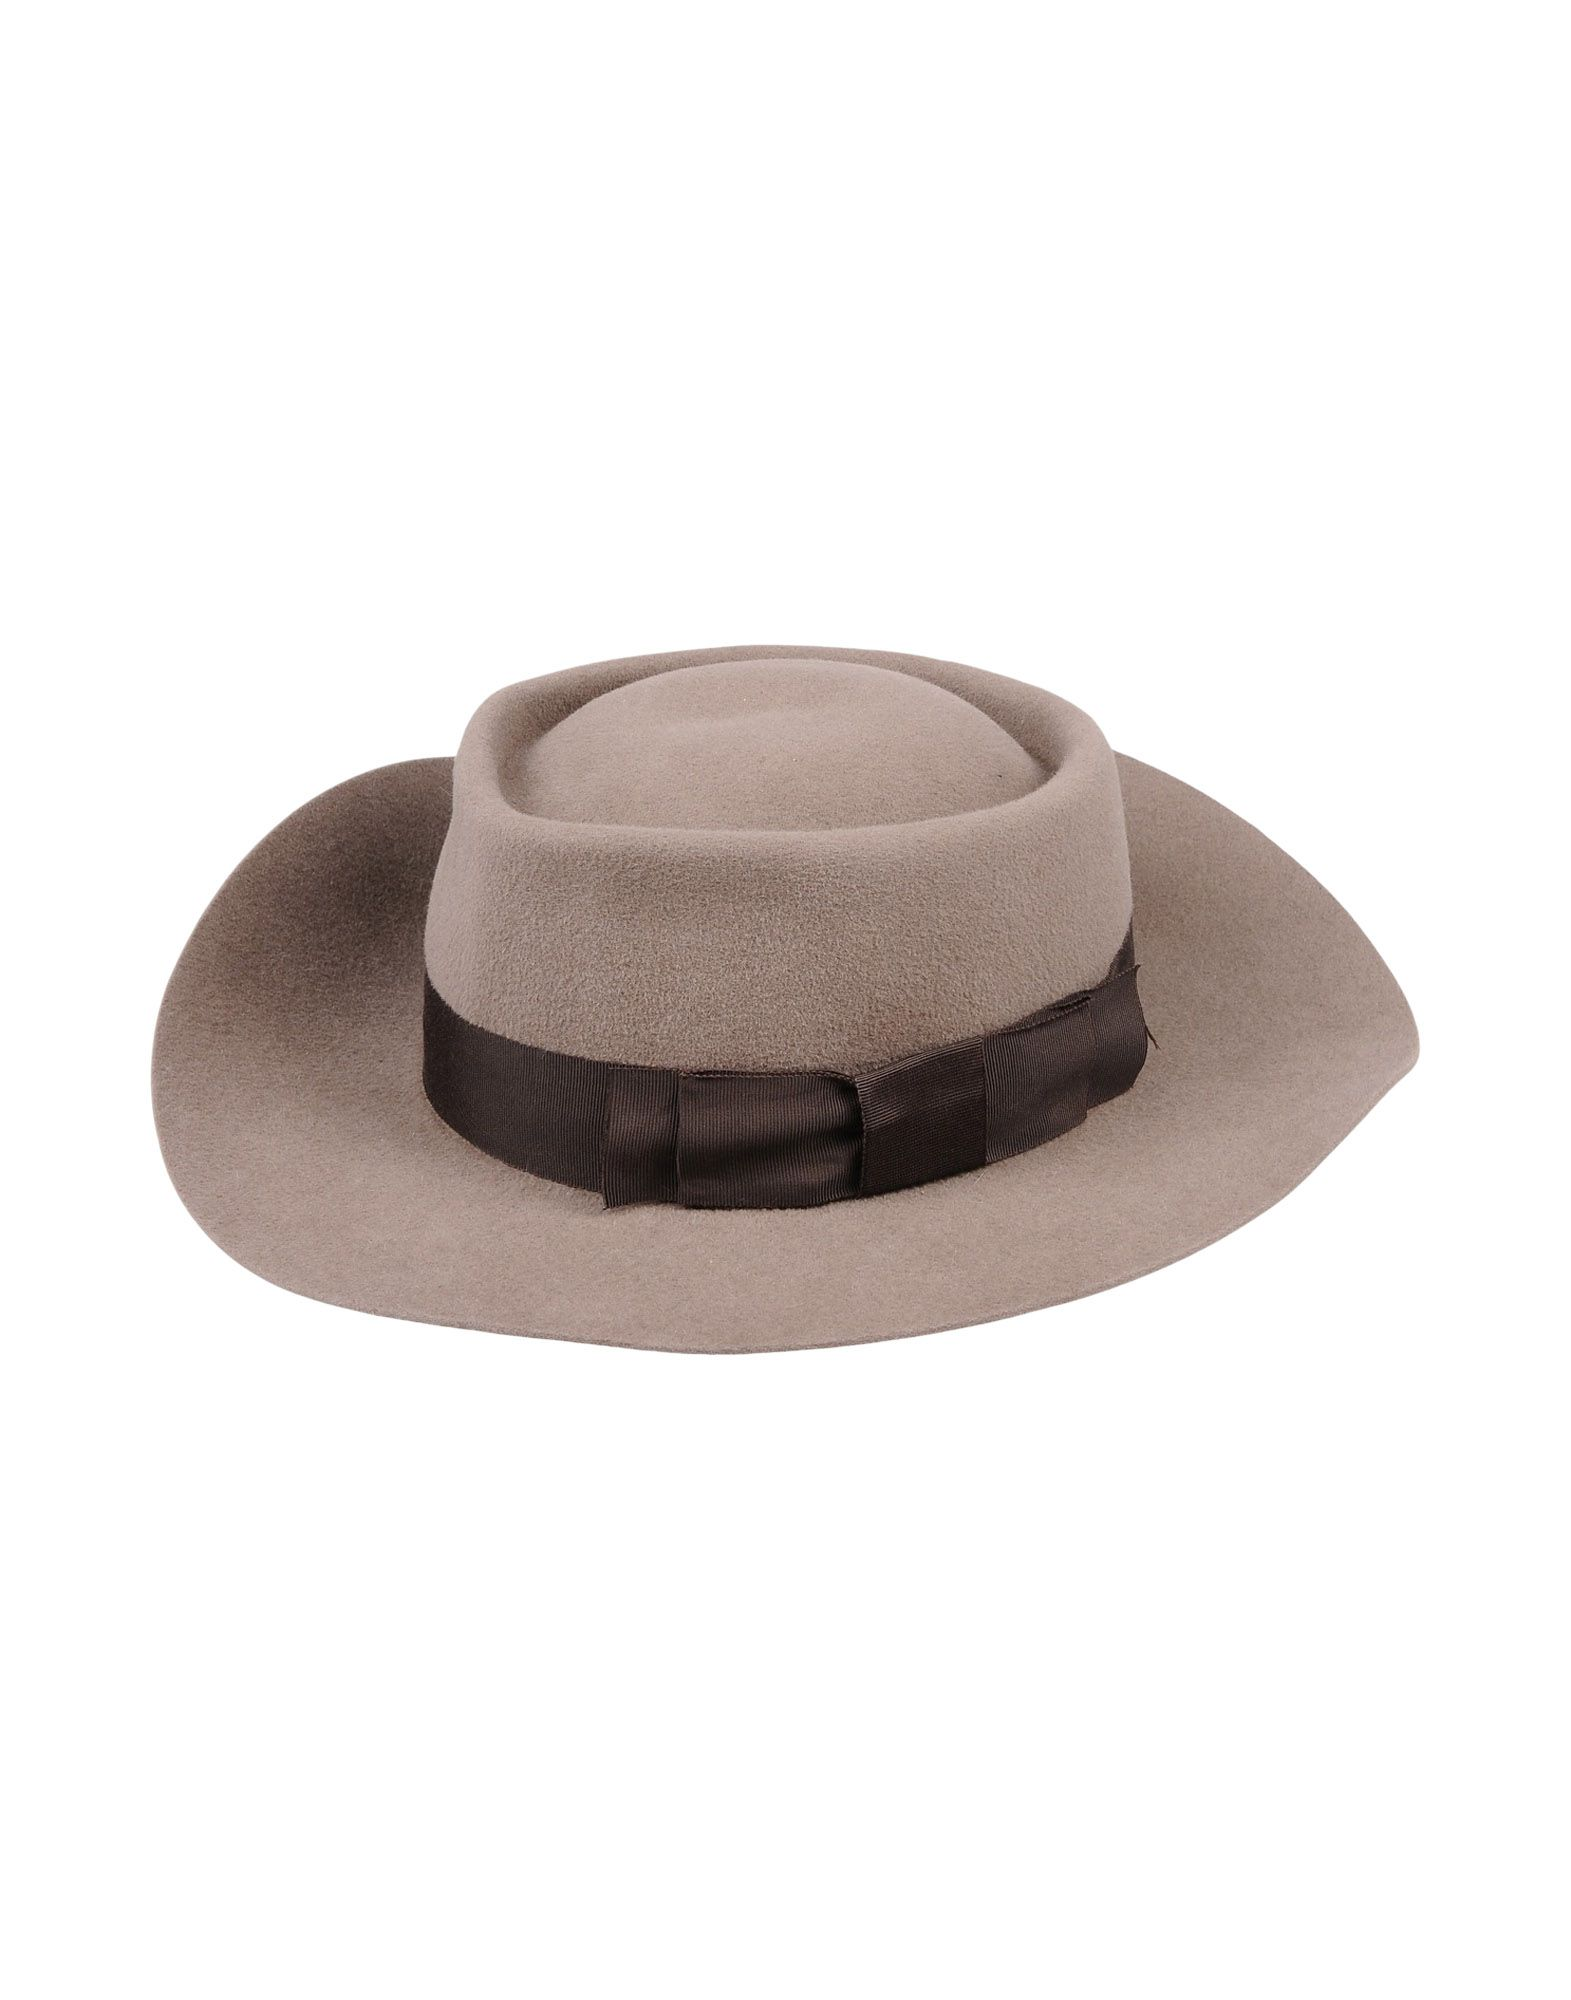 GLADYS TAMEZ Hat in Dove Grey